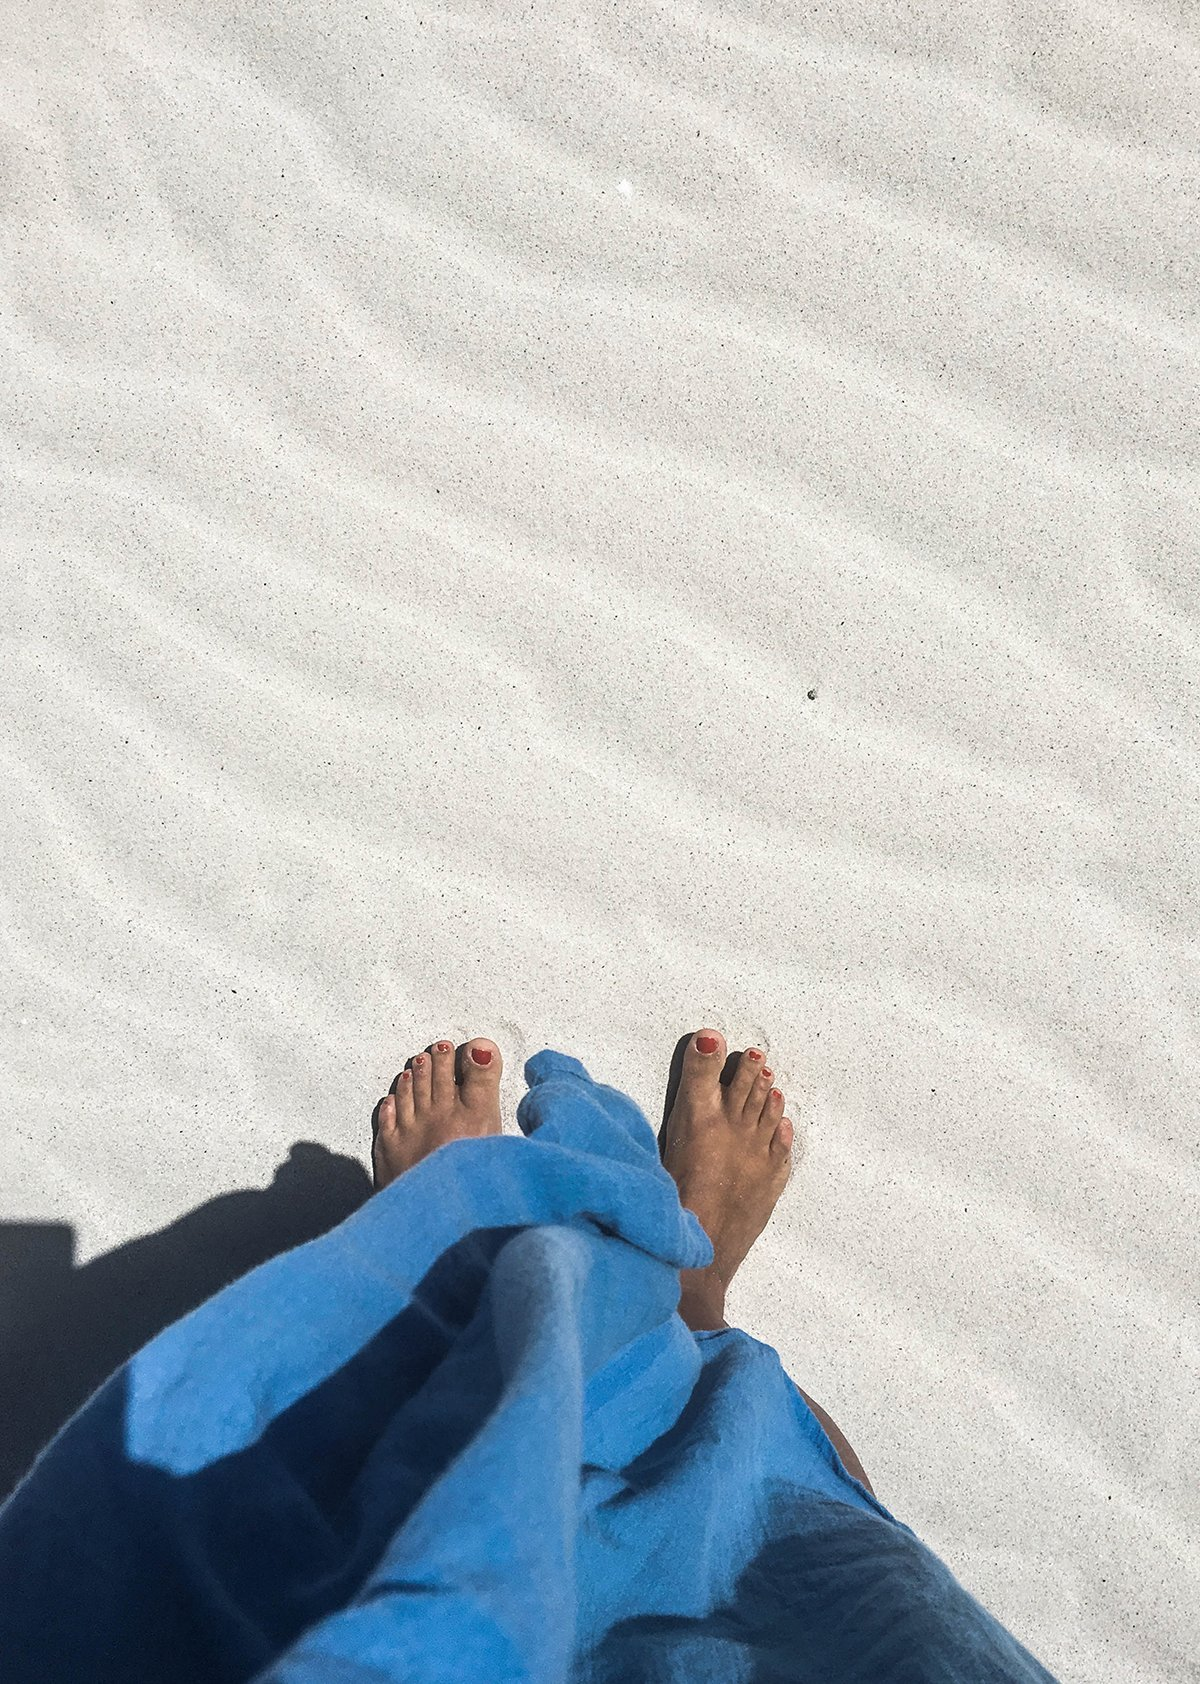 What are your travel plans for 2017? My happy feet have kicked in and I am now en route to Morocco, India & underwater!